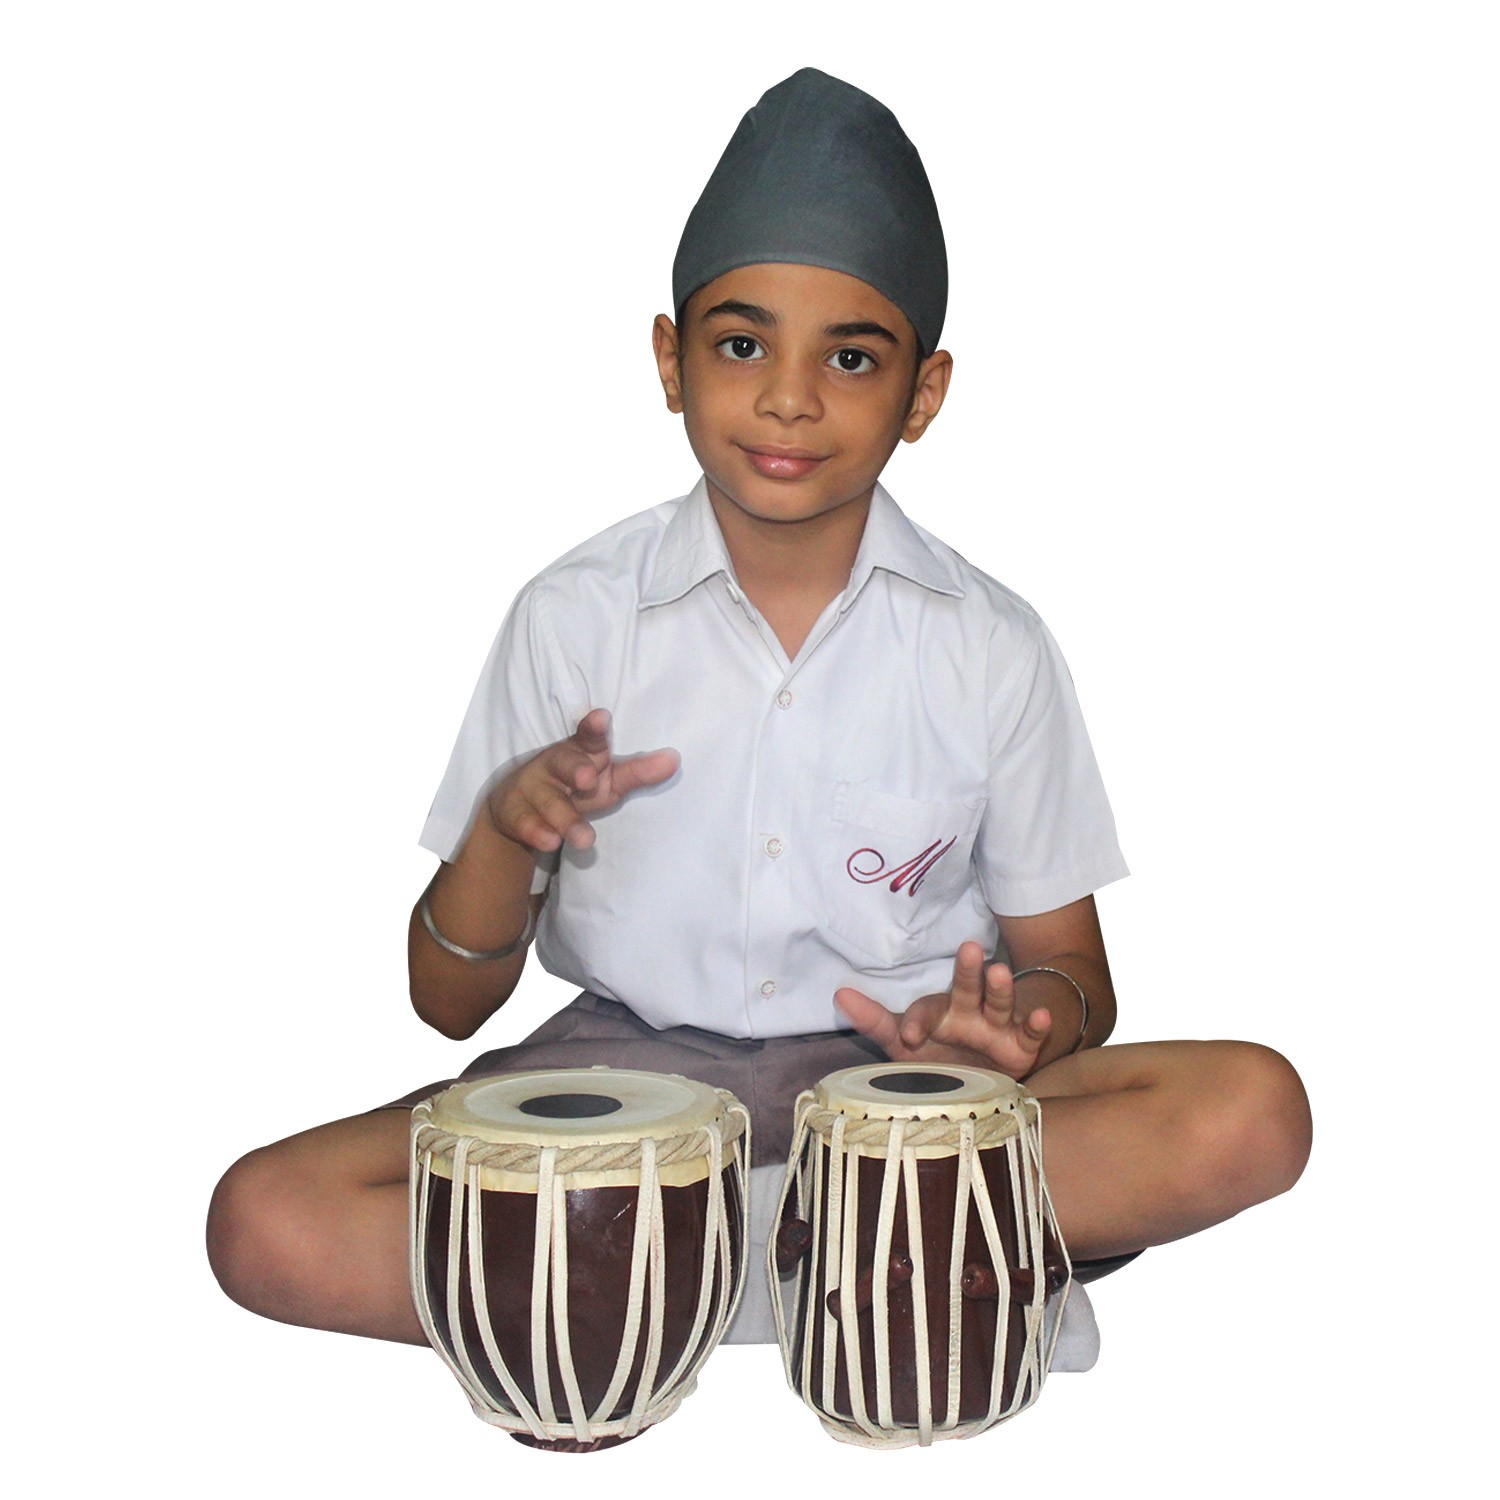 Handmade Wooden Kids Tabla Set by Awarded Artisans